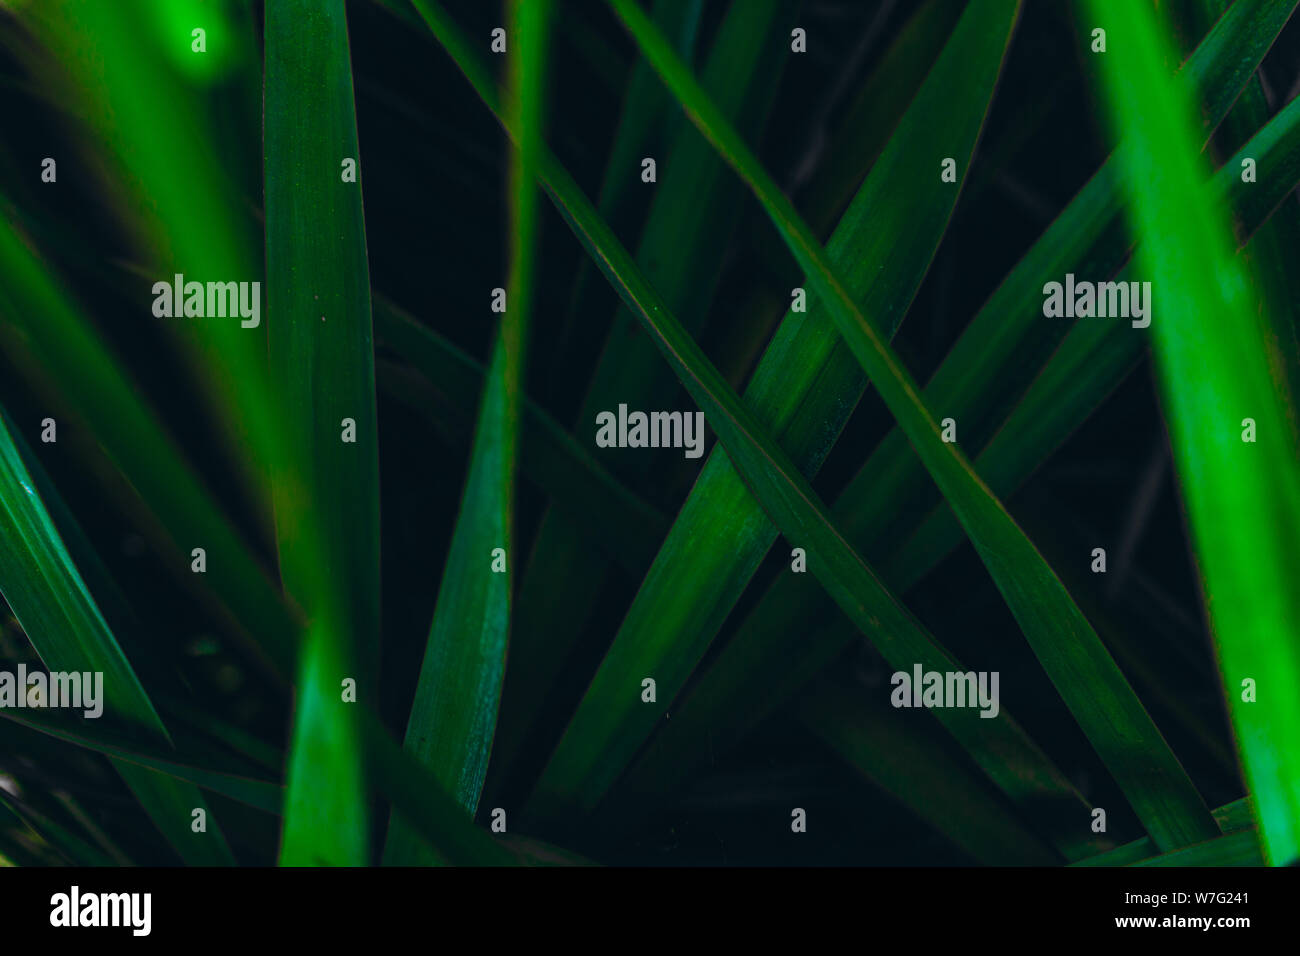 Creative layout made of green leaves. Green leaves pattern background. Stock Photo